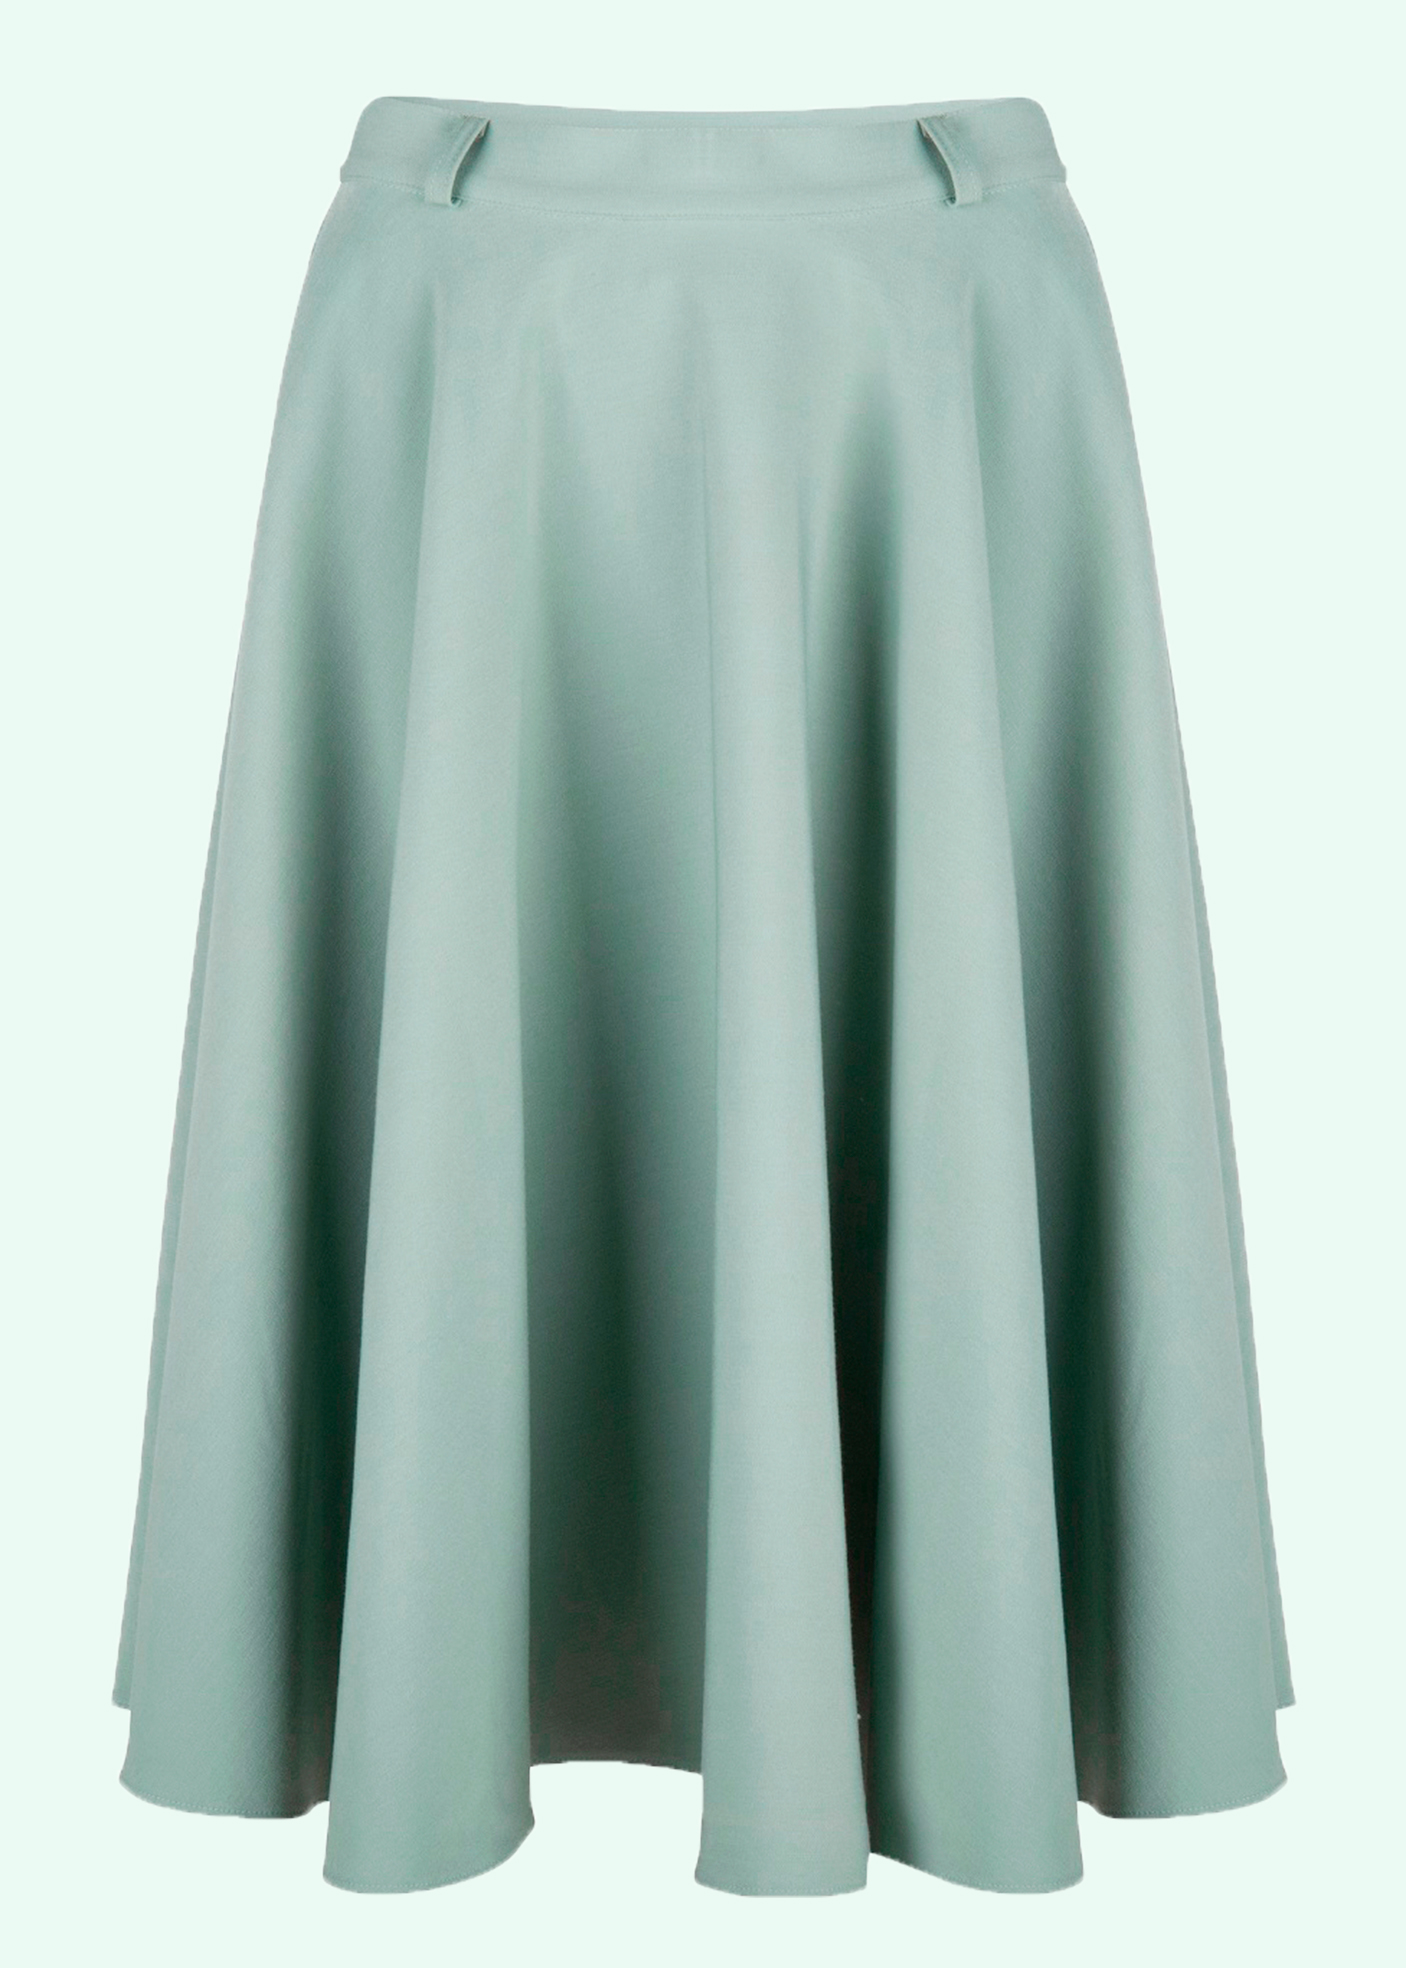 1950s style swing summer skirt from Very Cherry